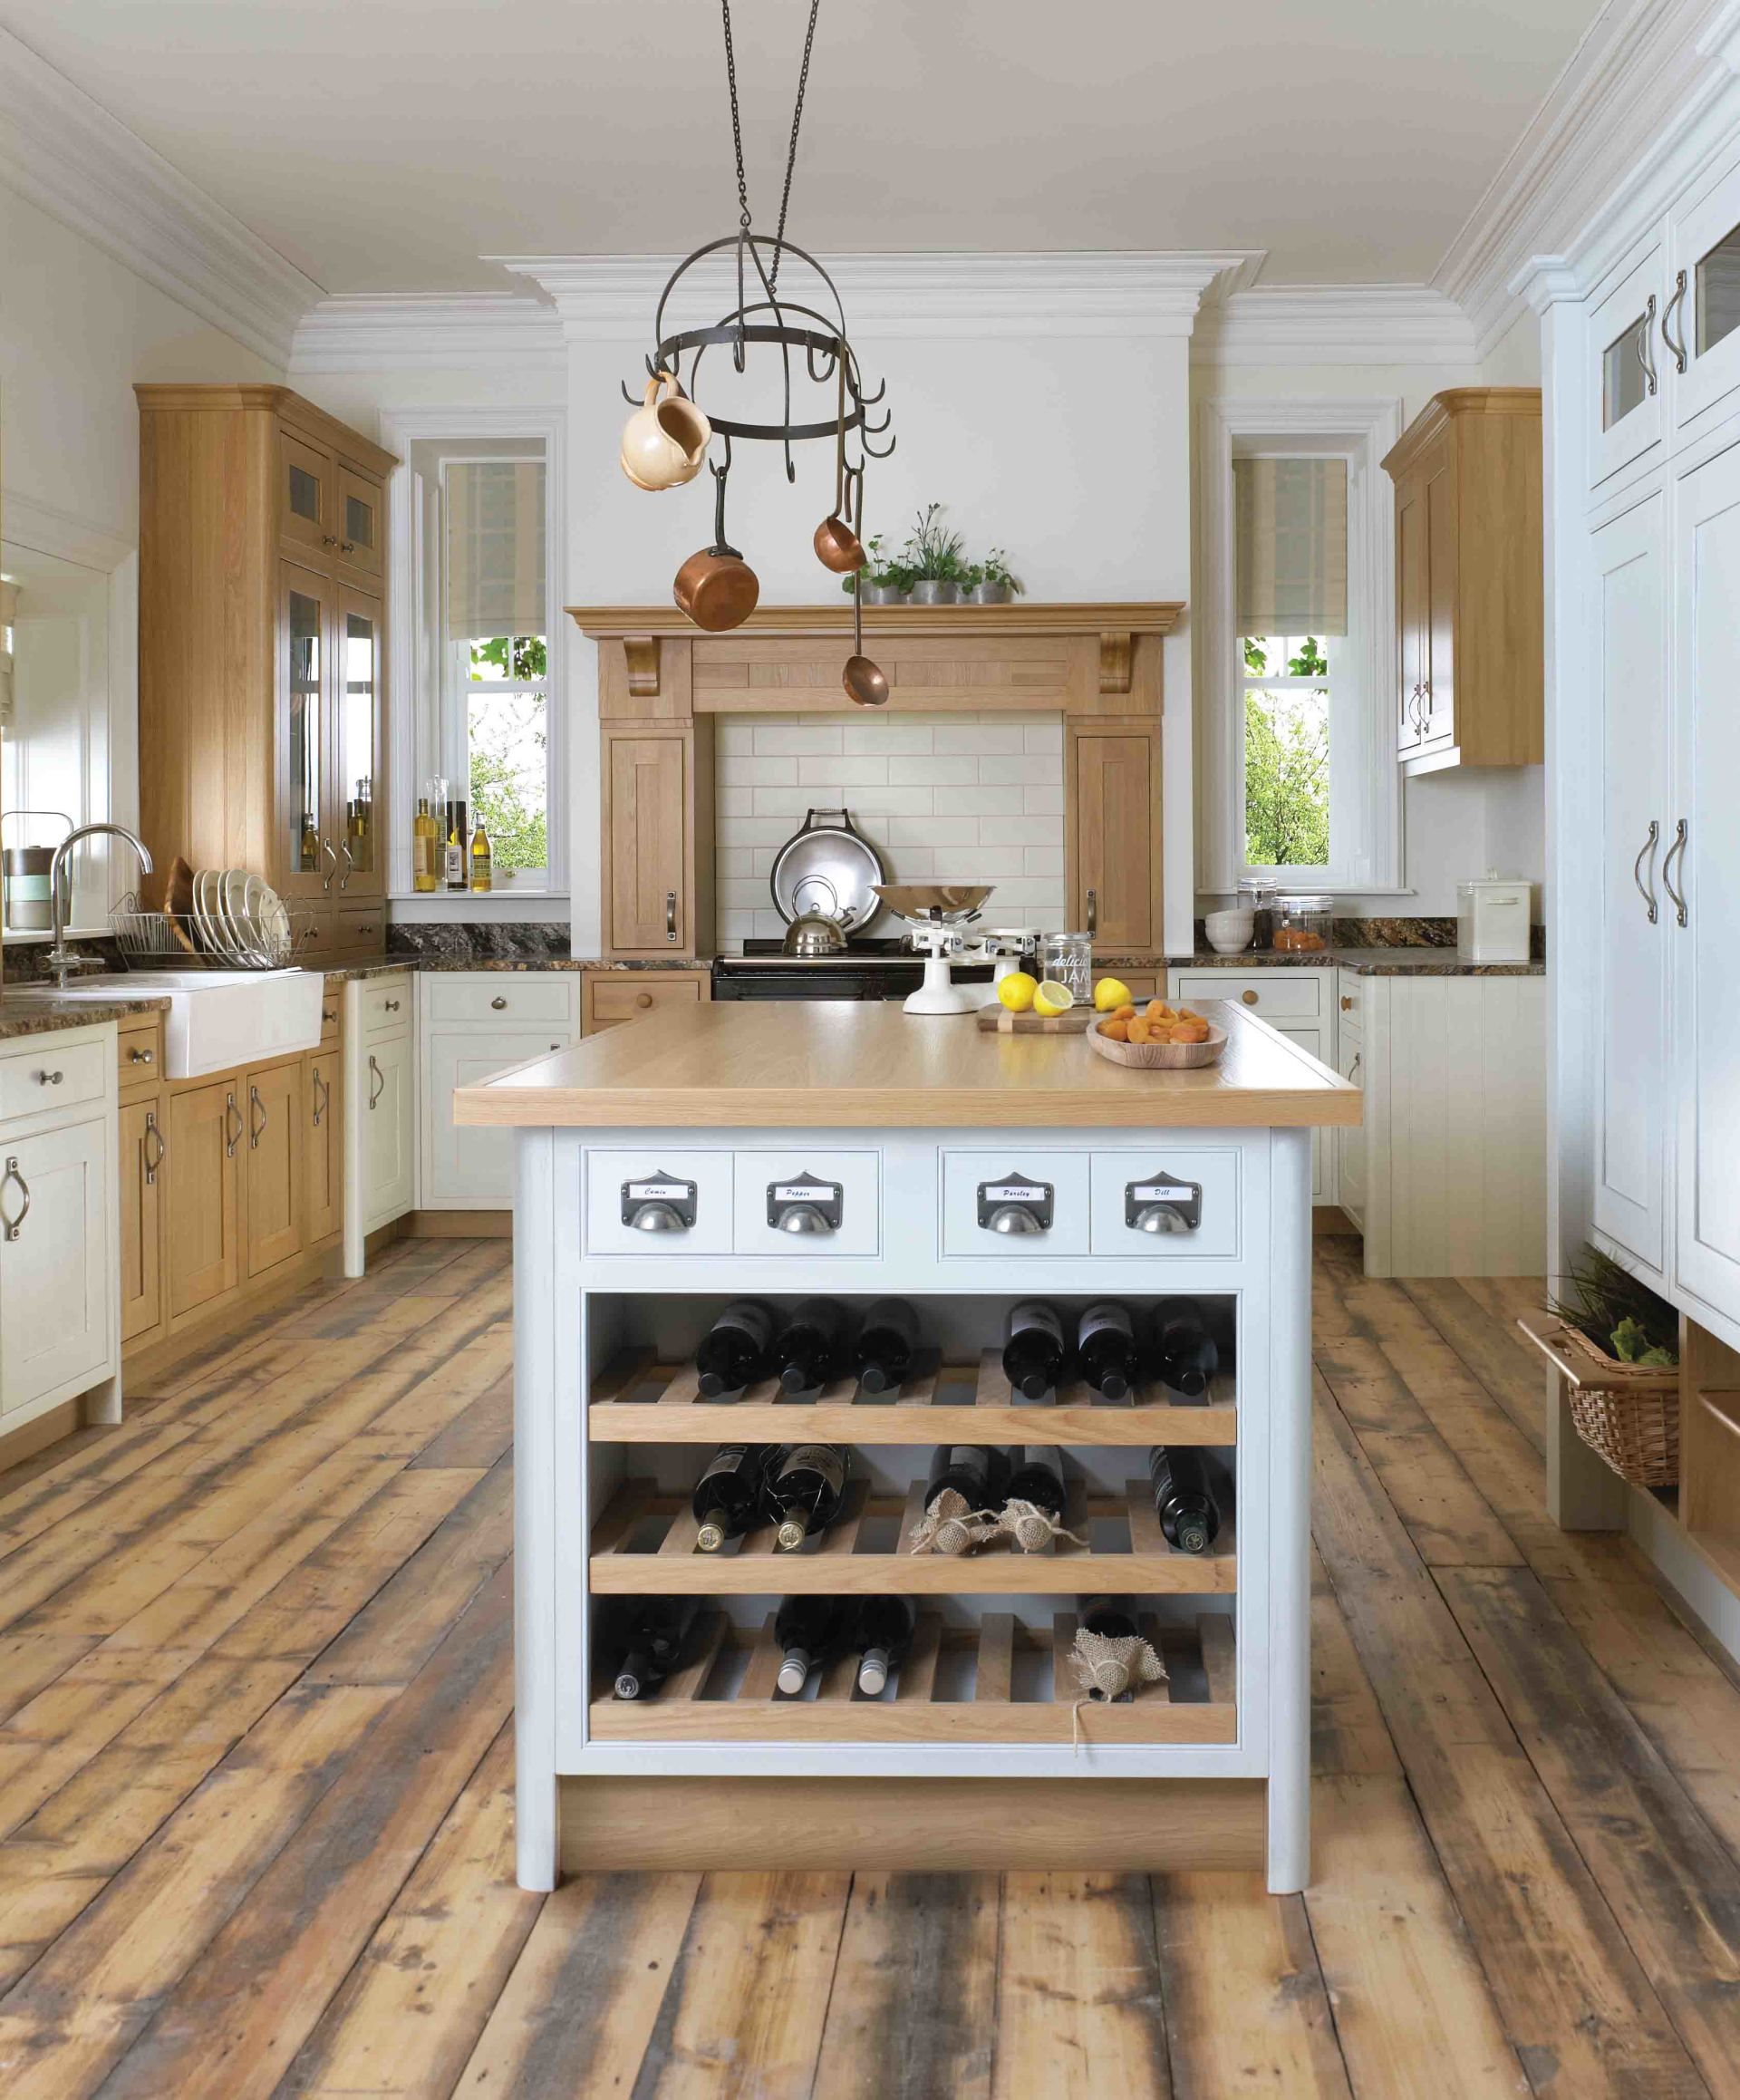 Kitchen Gallery Solihull: Hayford Kitchens & Bedrooms